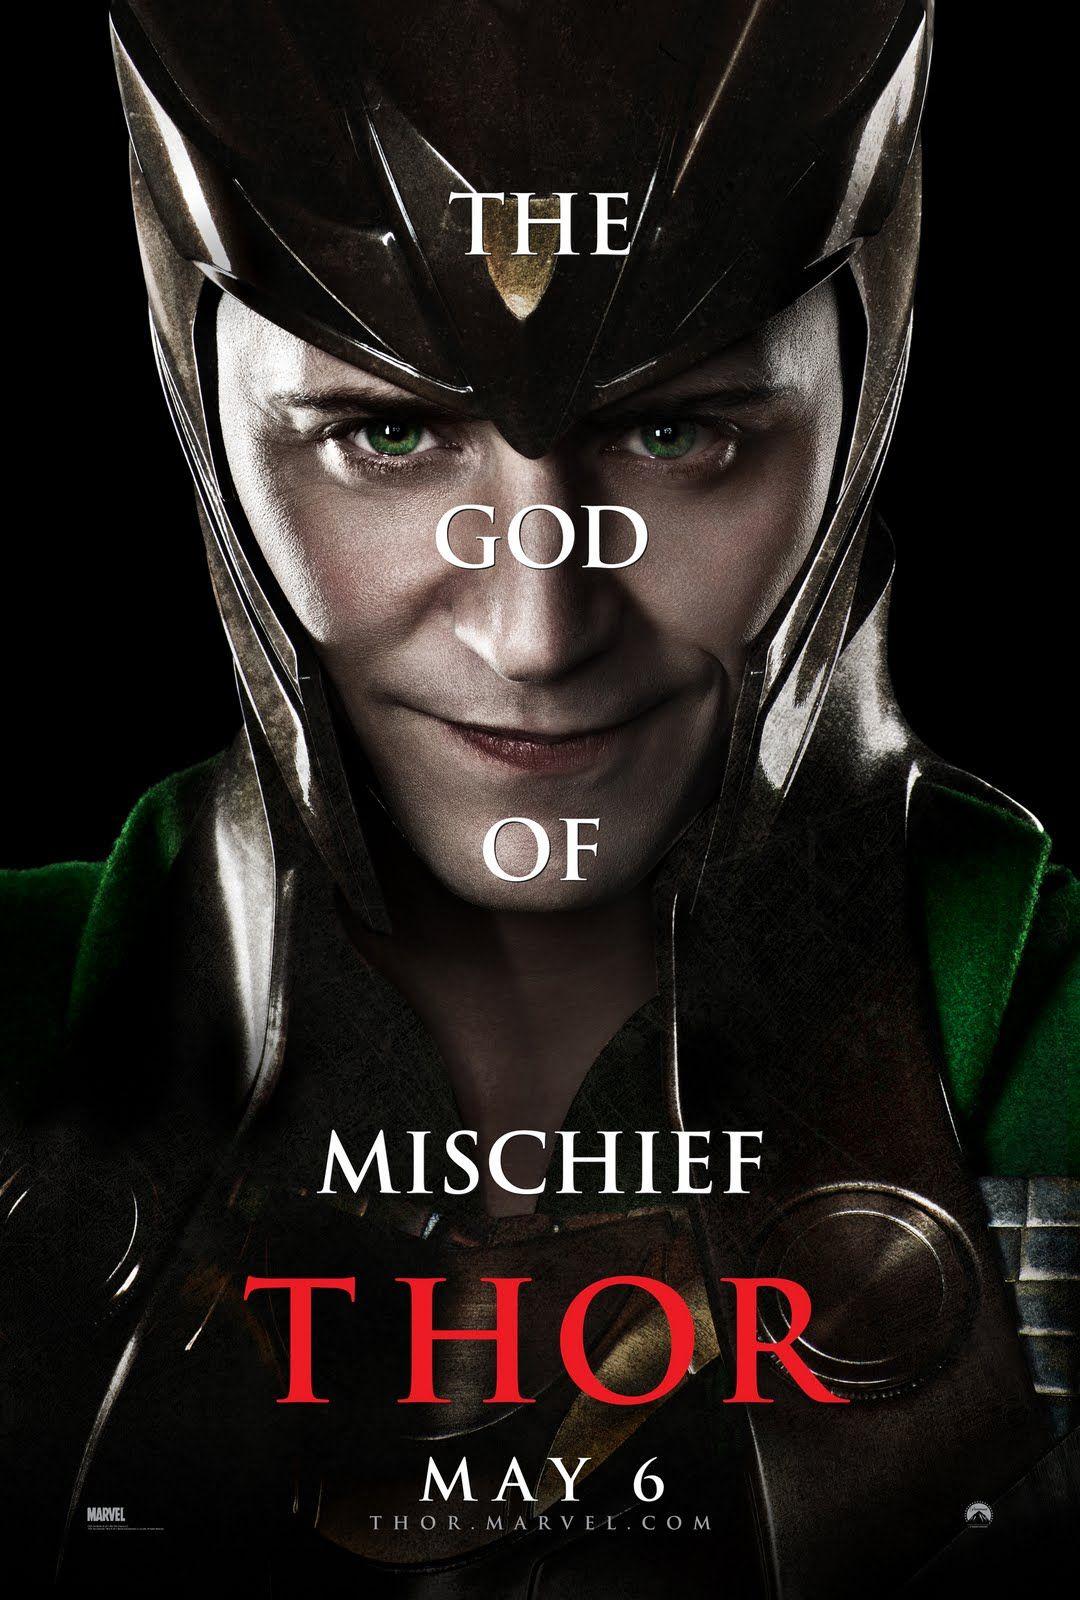 Both Thor films were amazing, cant wait for the 3rd :)